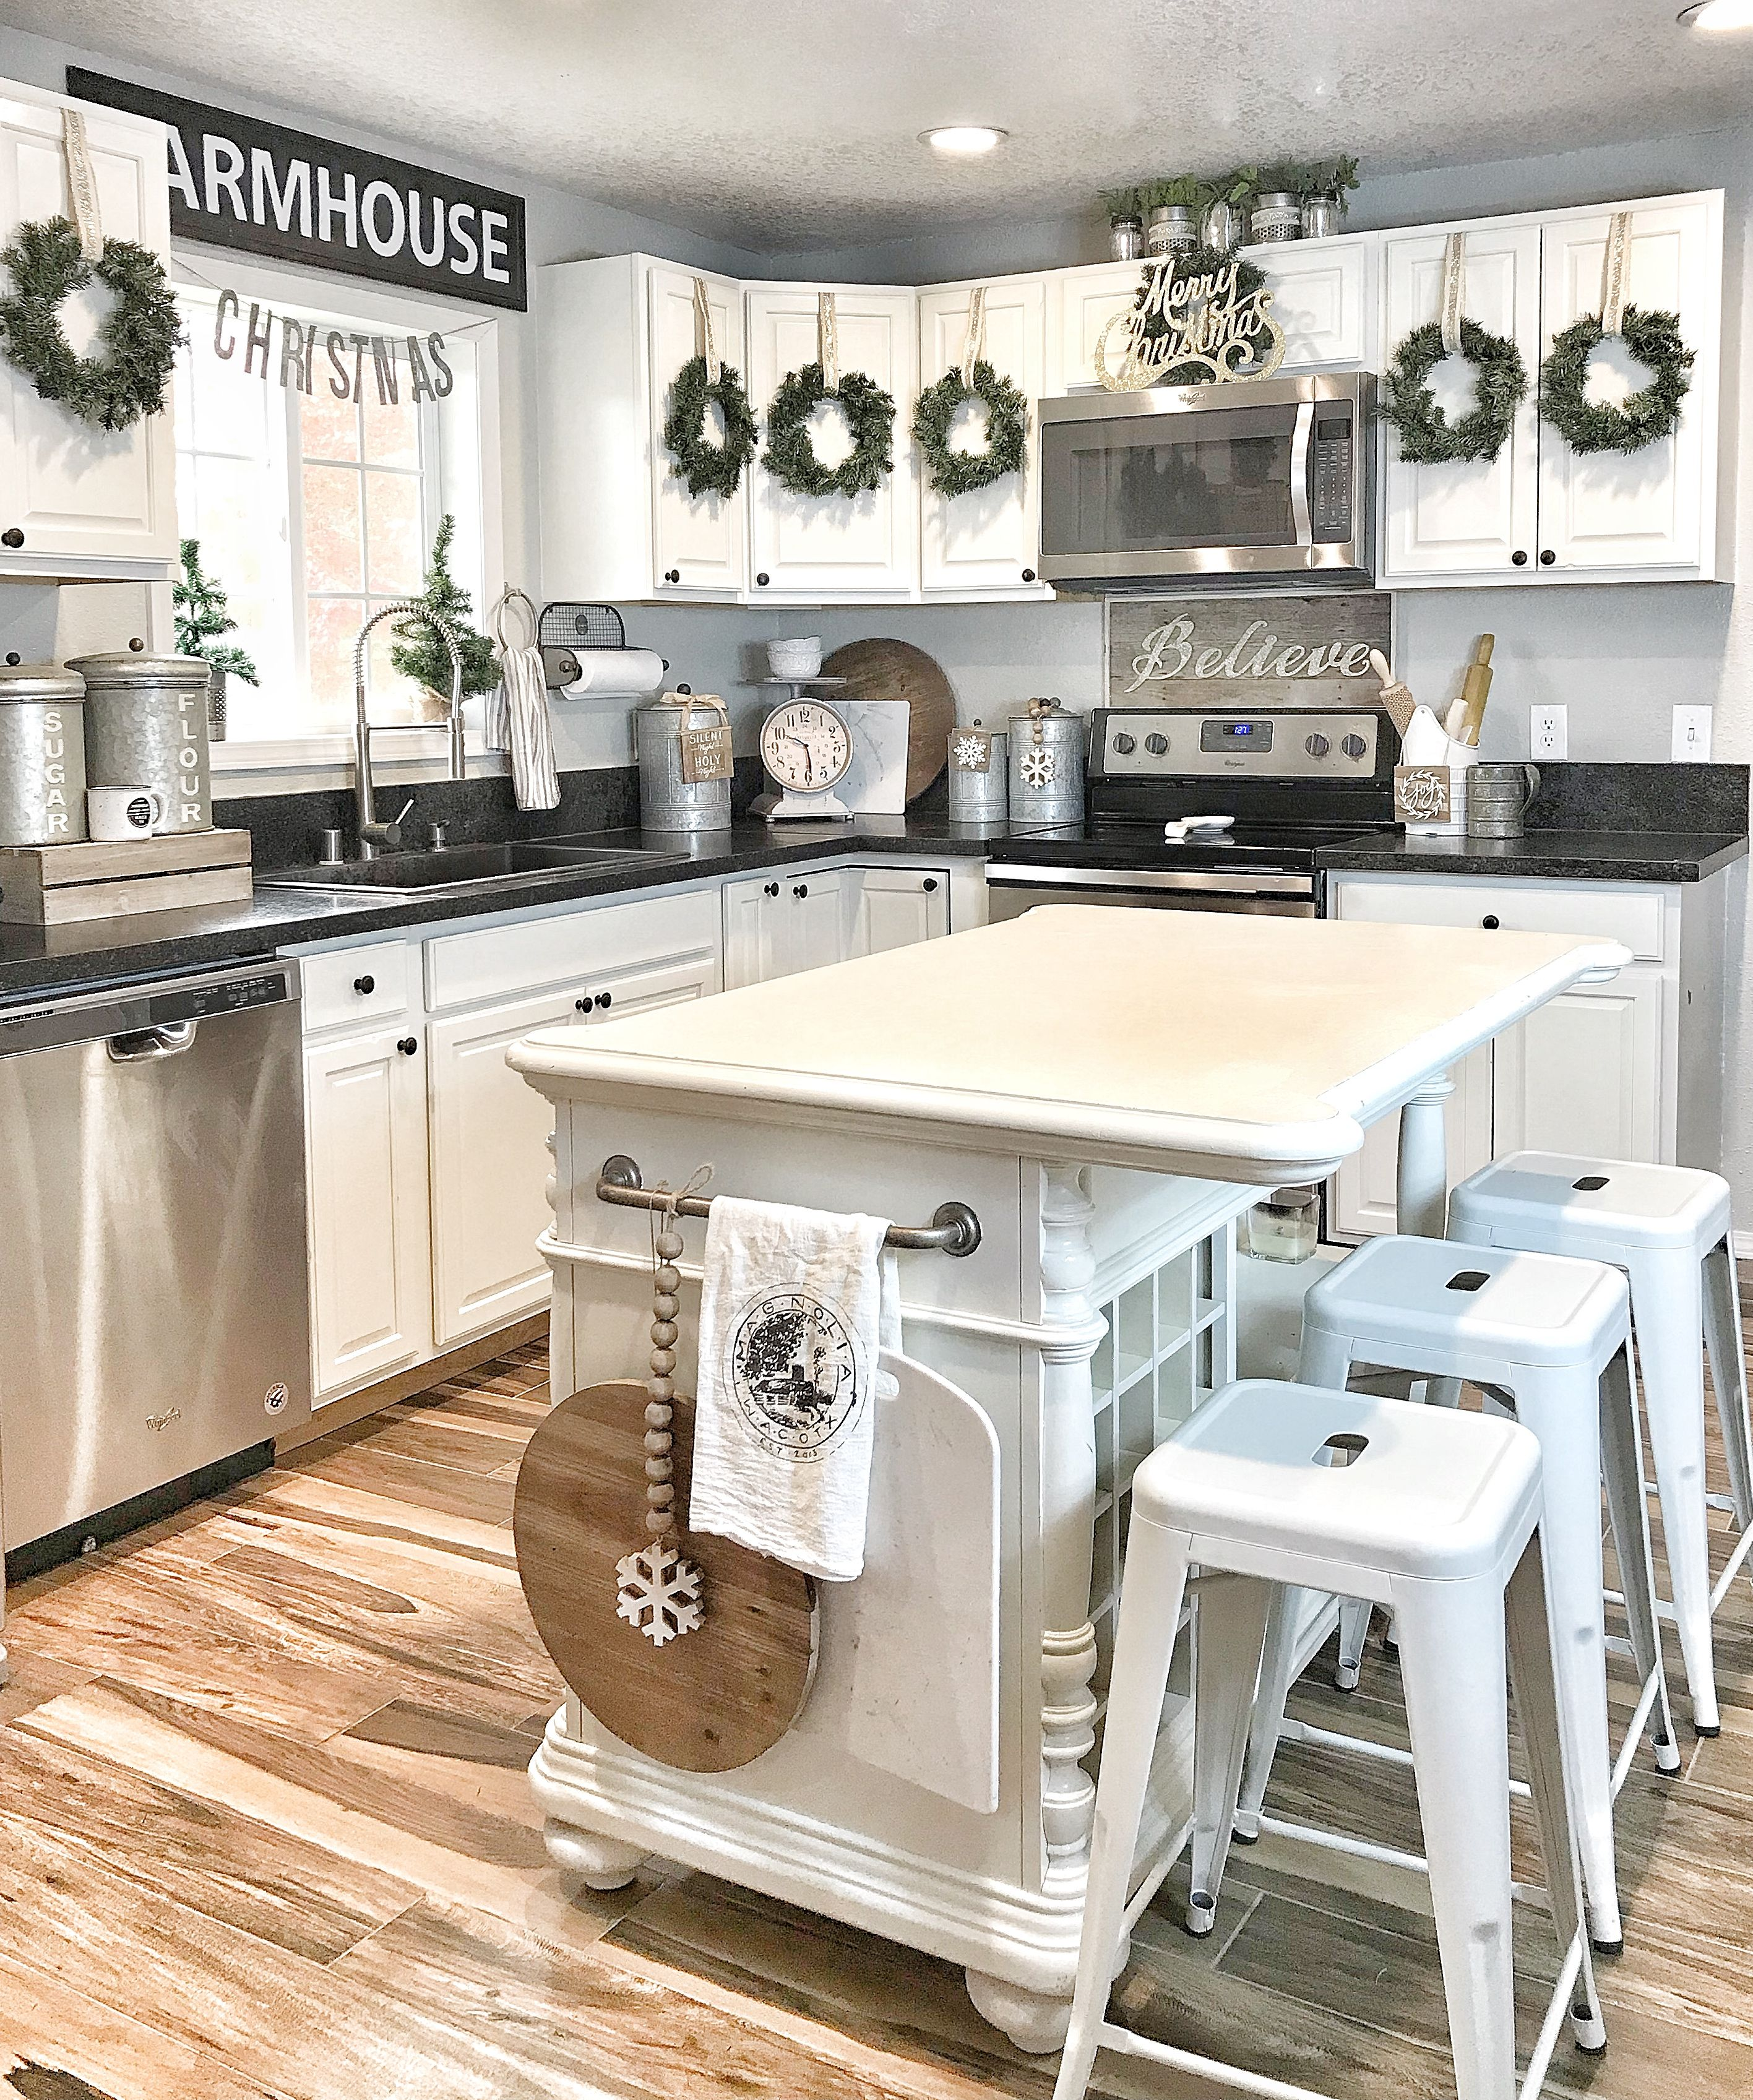 Kitchen Cabinet Christmas Decorating Ideas: Farmhouse Christmas Kitchen. Cabinet Door Wreaths. Make A